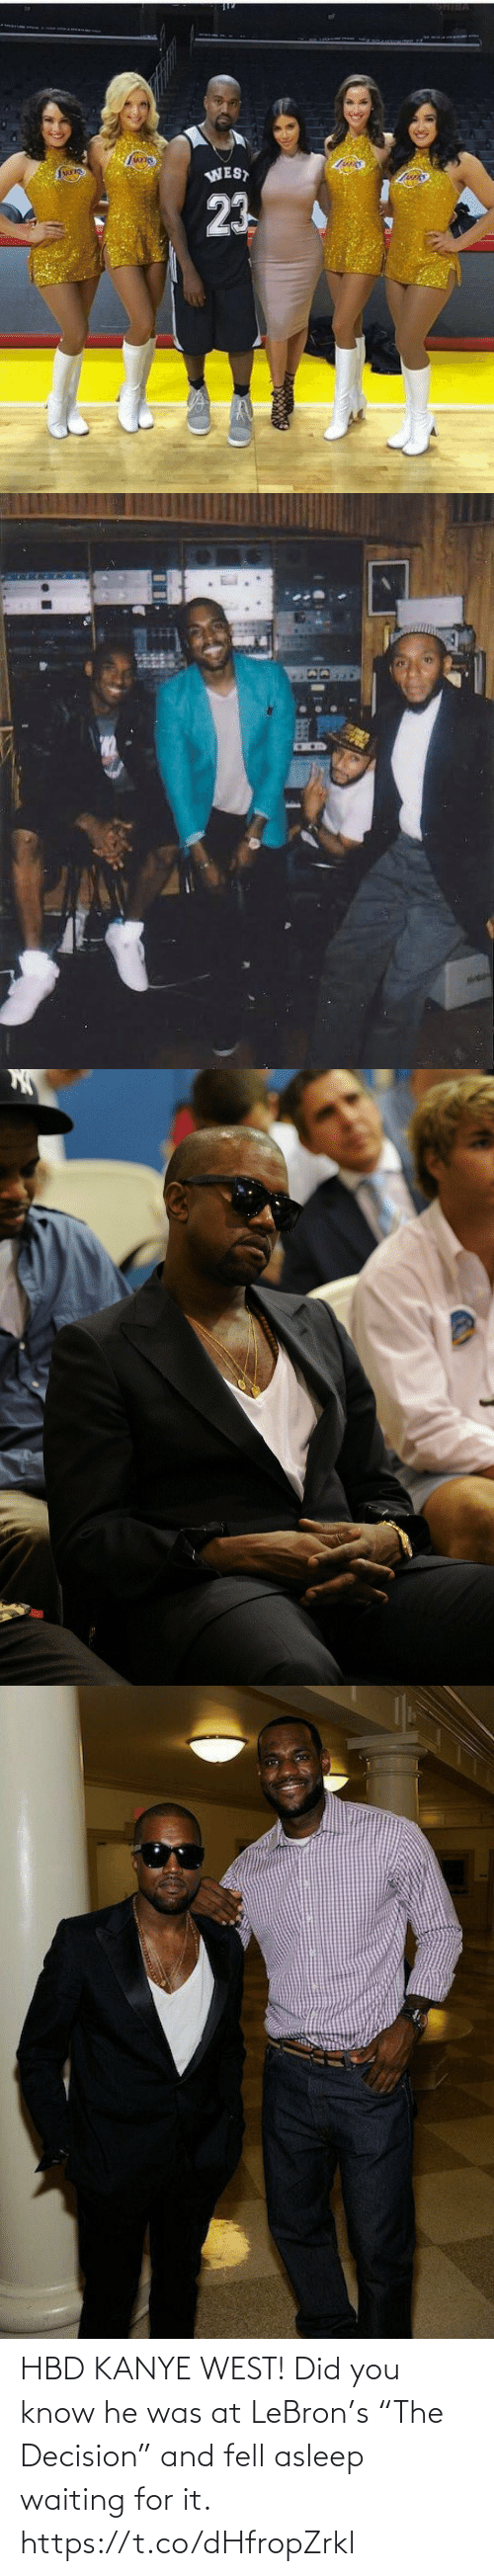 "decision: HBD KANYE WEST! Did you know he was at LeBron's ""The Decision"" and fell asleep waiting for it. https://t.co/dHfropZrkl"